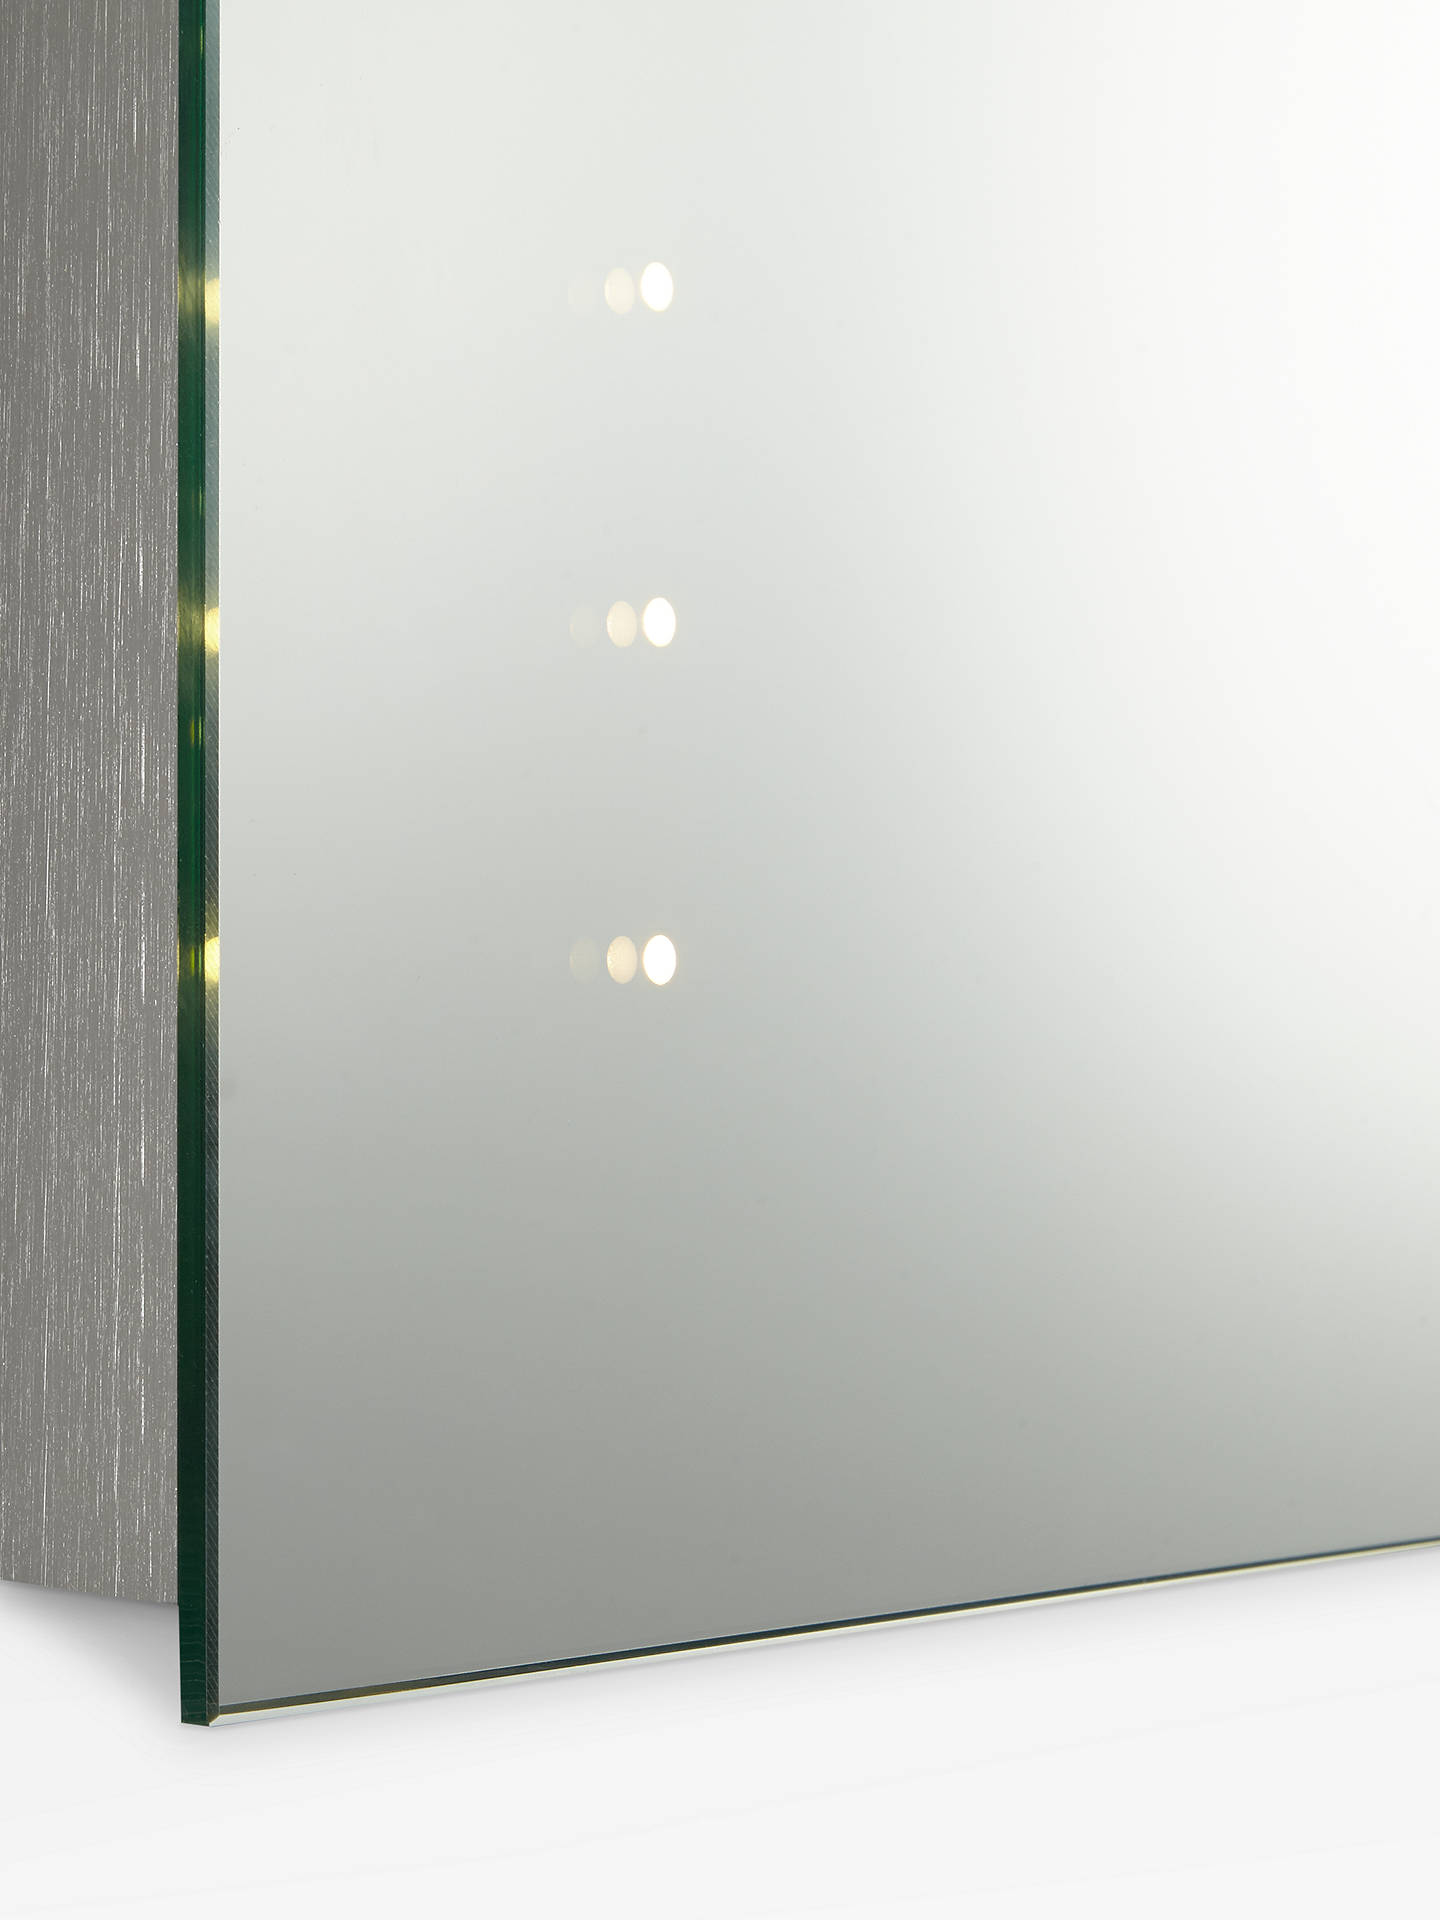 BuyJohn Lewis & Partners LED Starlight Illuminated Bathroom Mirror Online at johnlewis.com